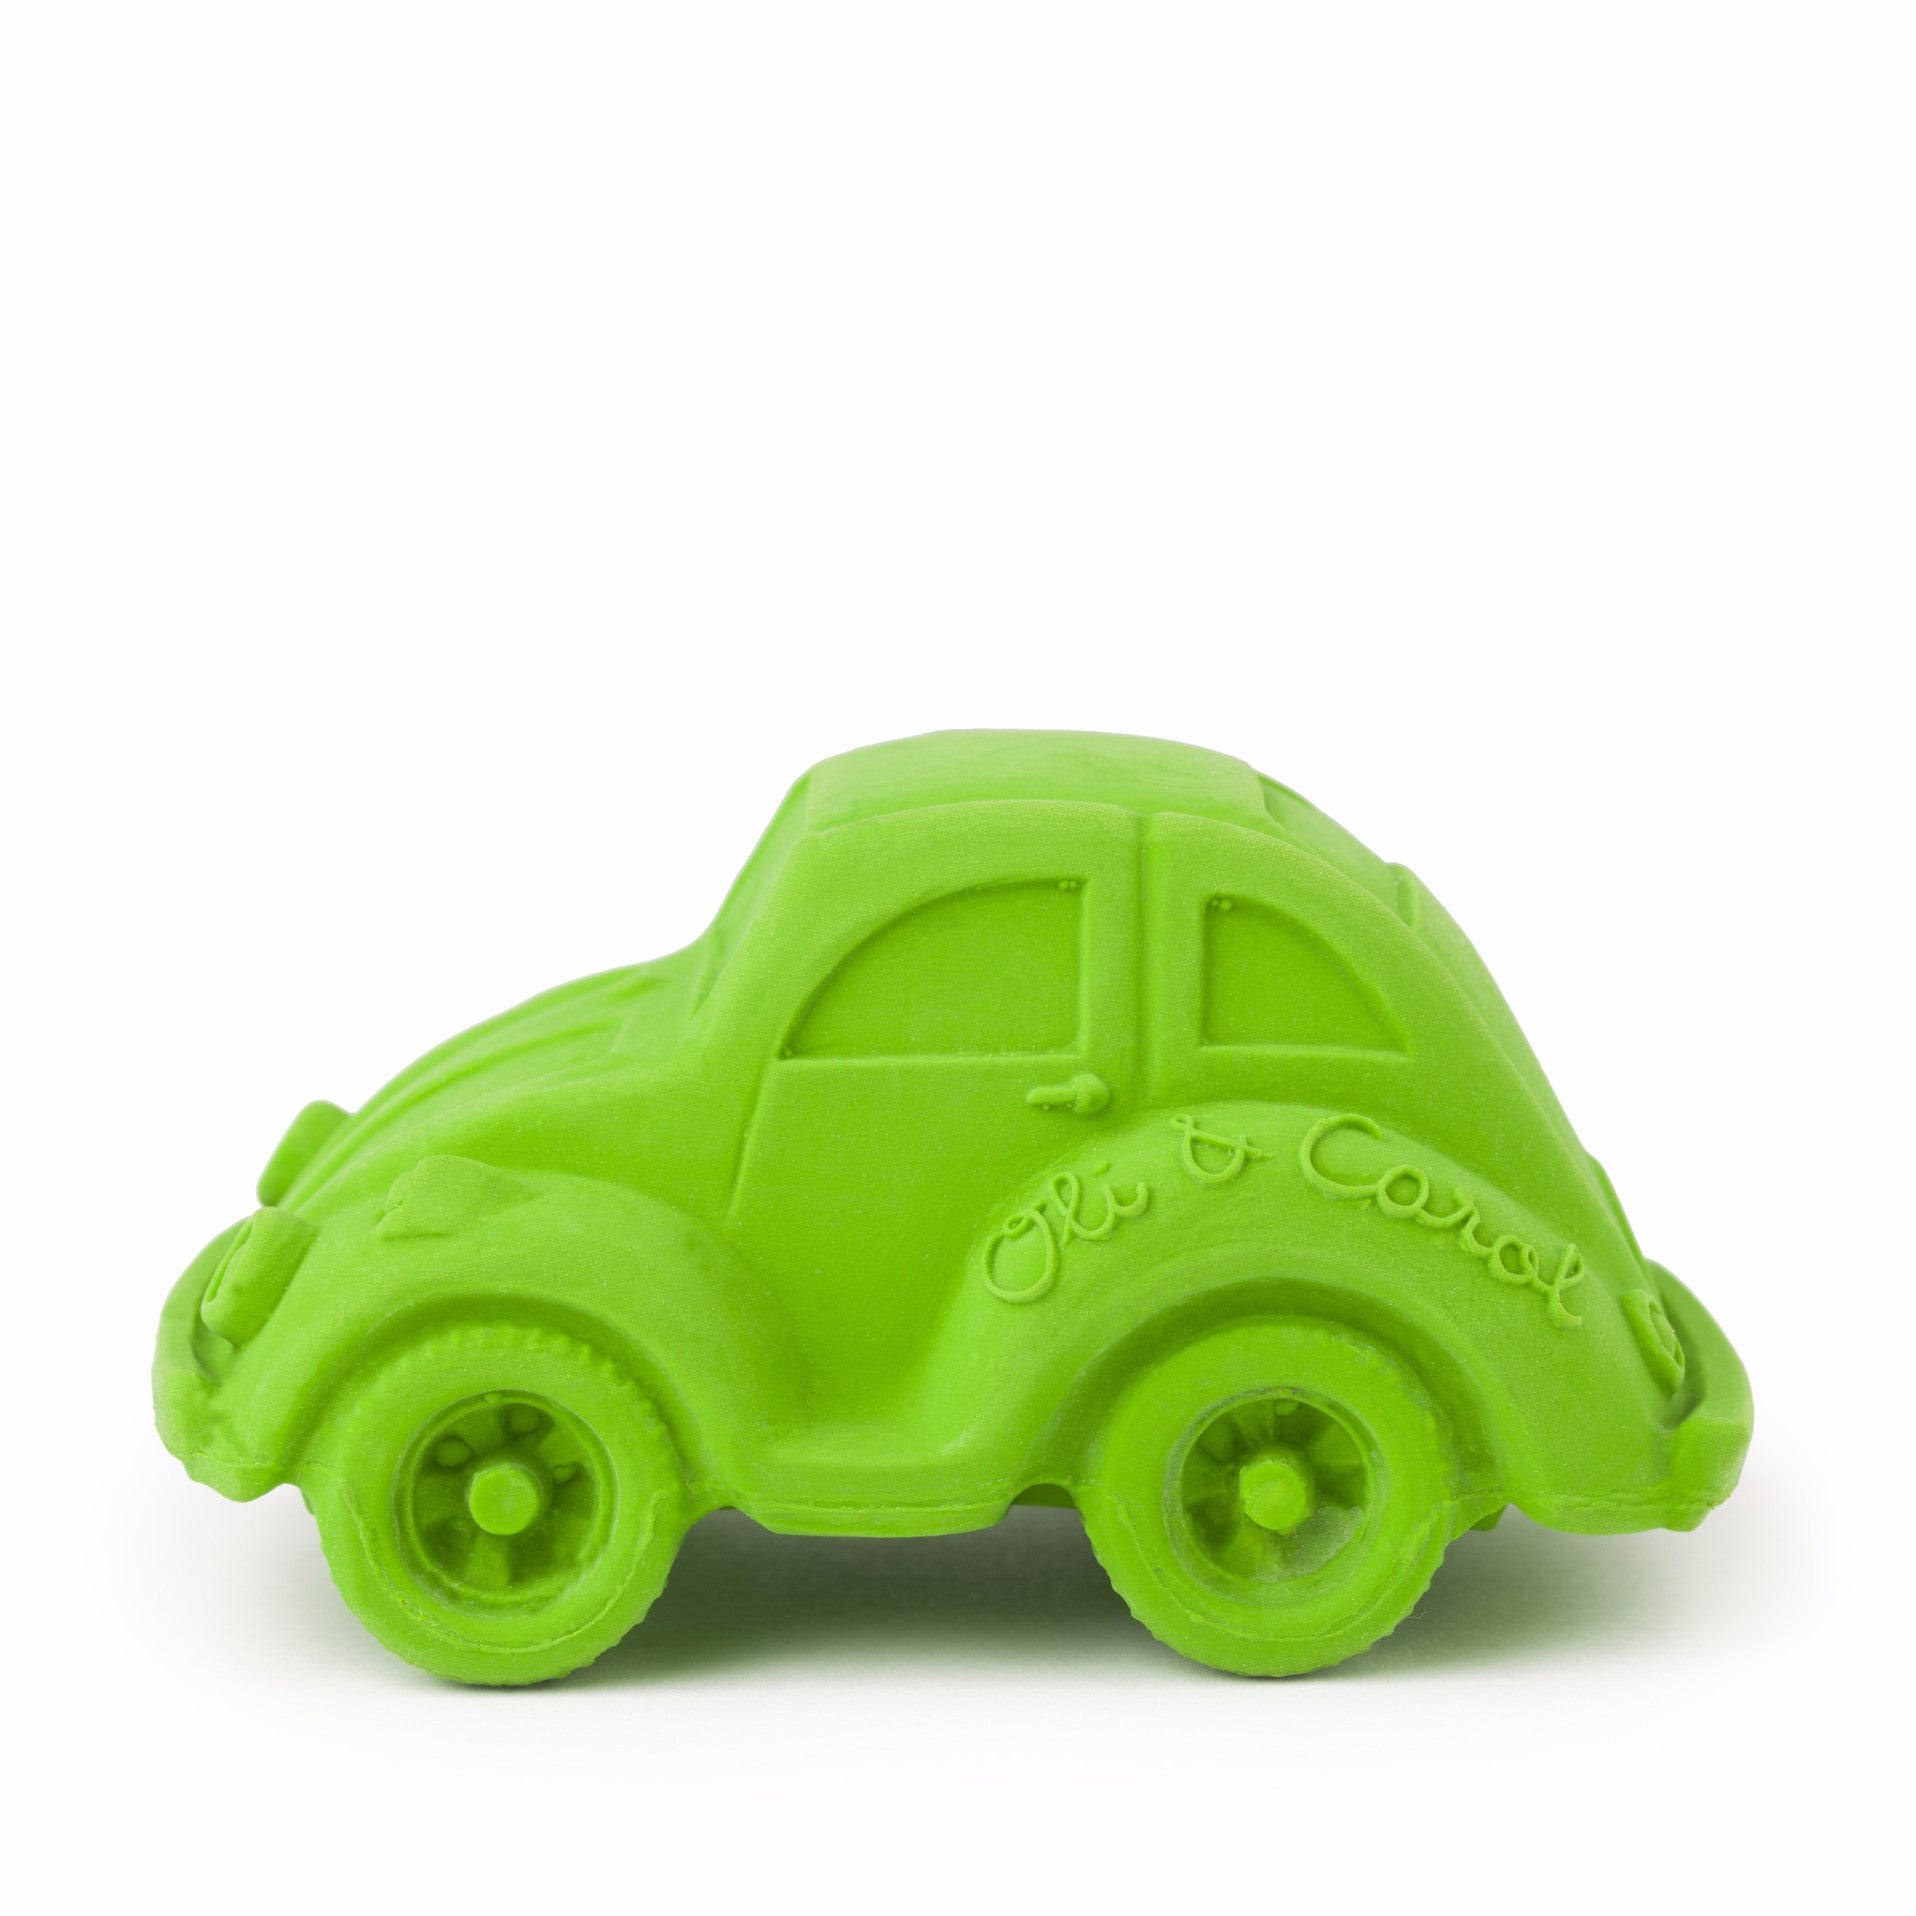 Oli & Carol Small Beetle Car in Green | BIEN BIEN